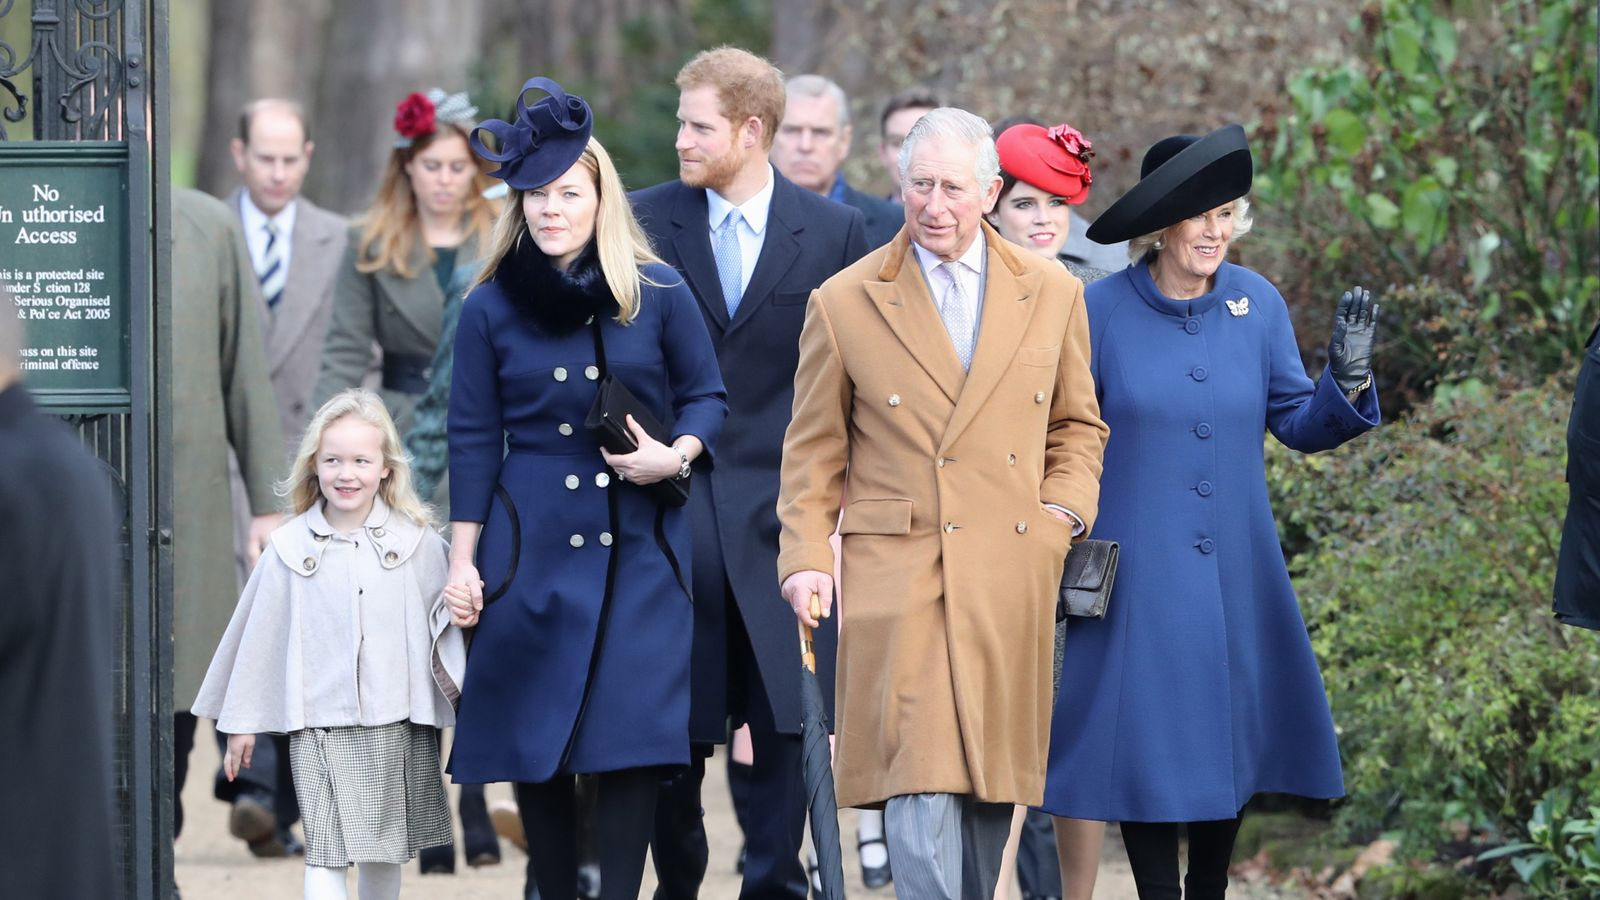 Who was the busiest member of the Royal Family in 2016?